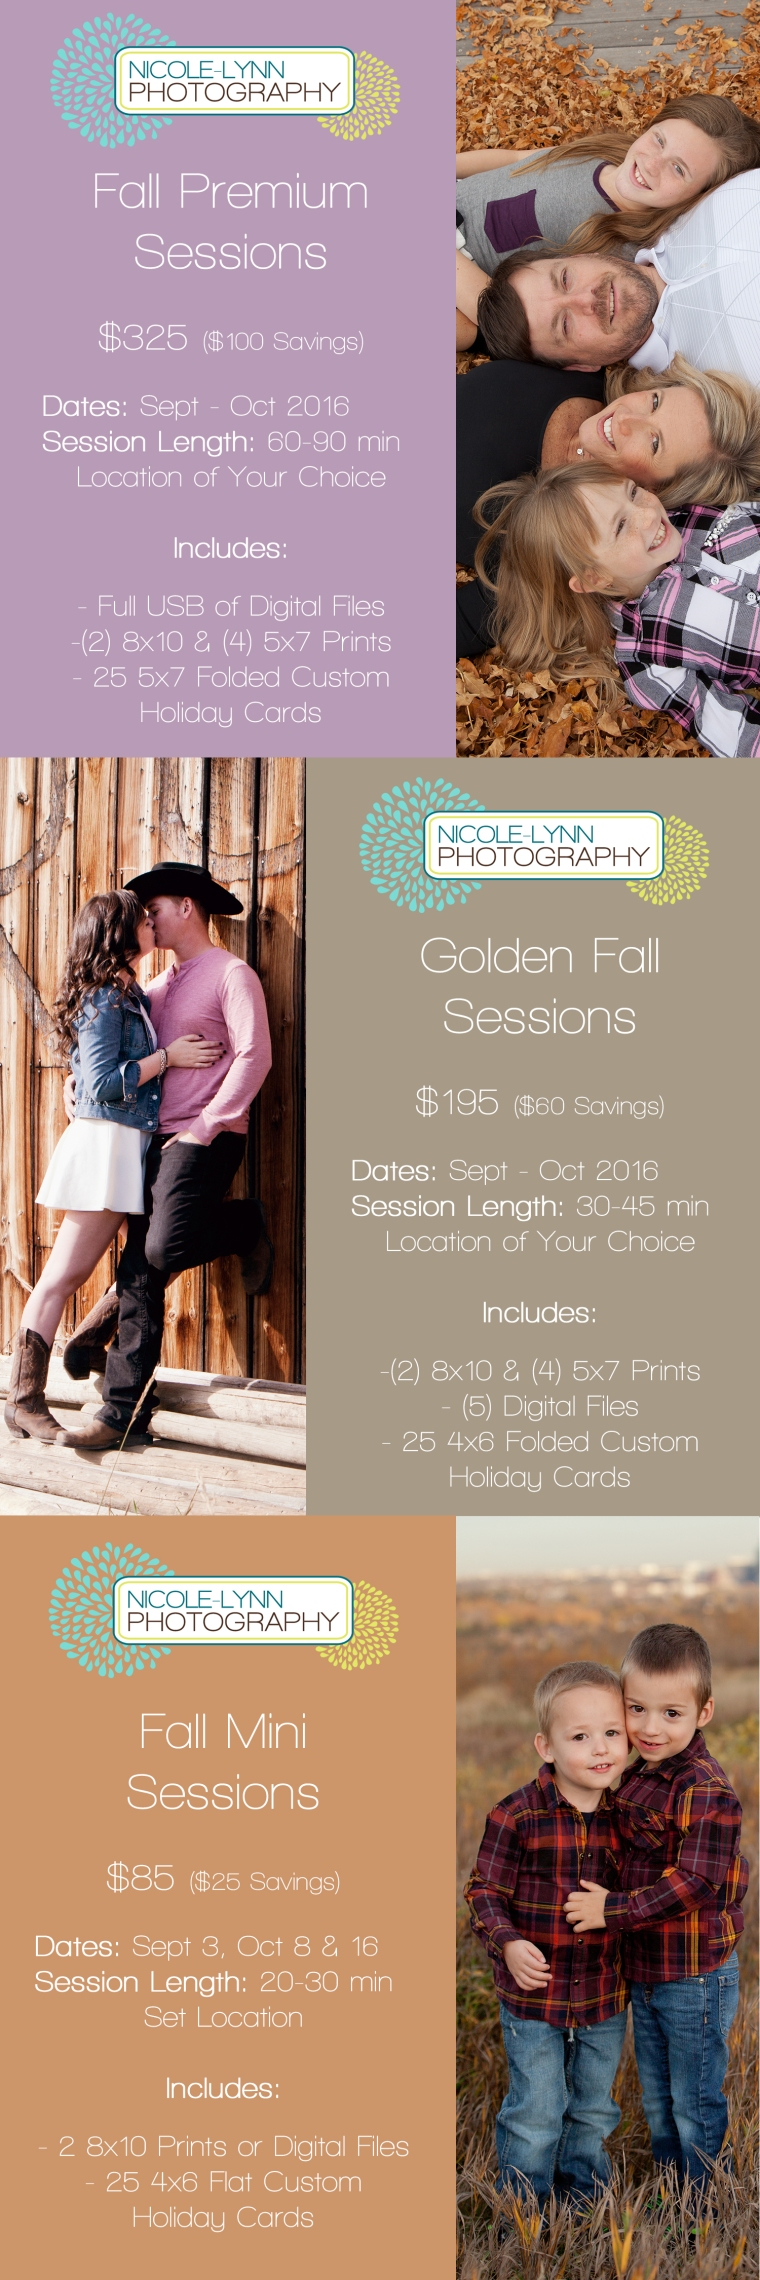 2016 Fall Sessions